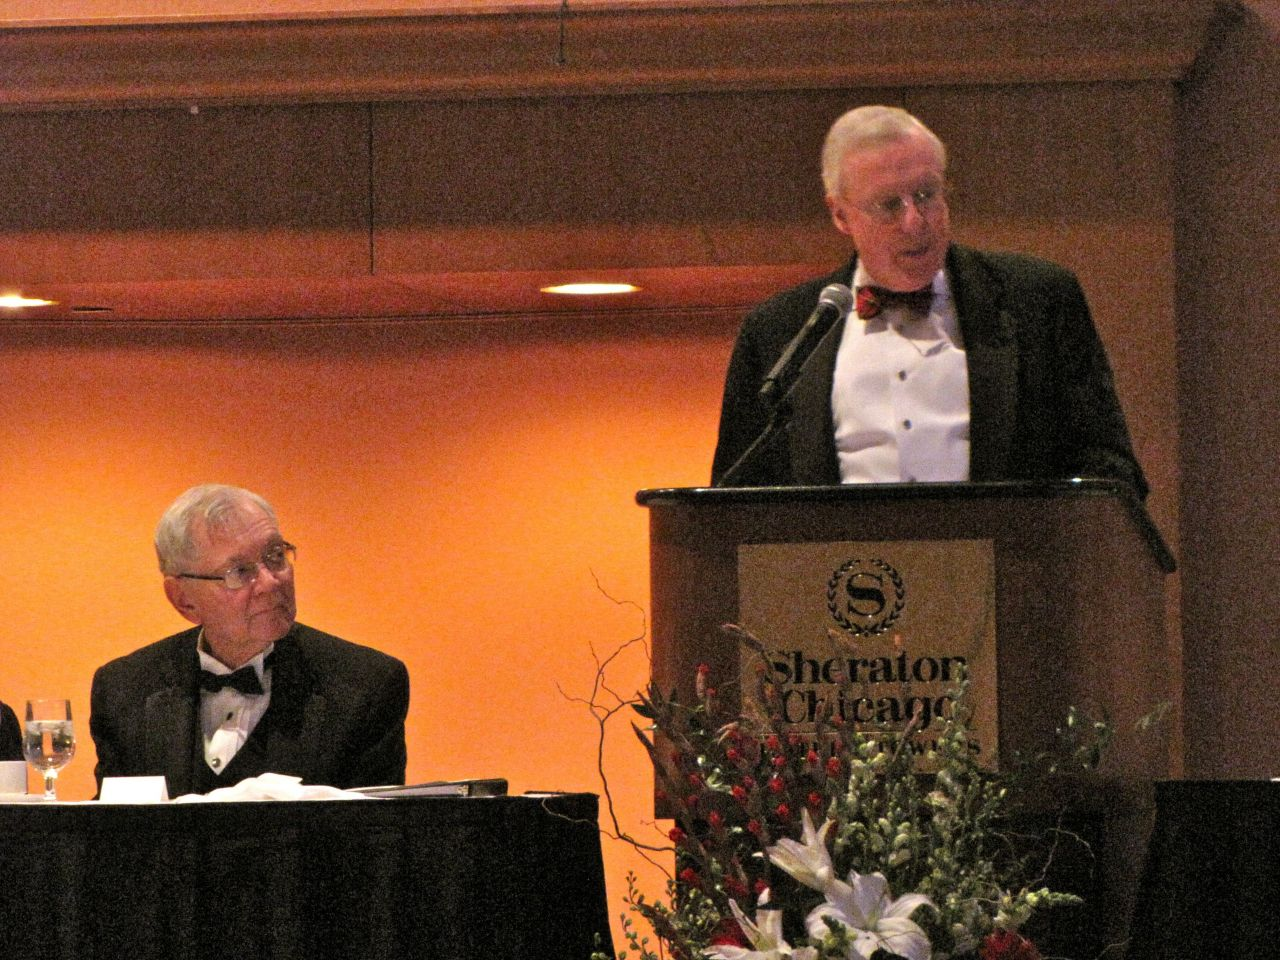 Chief Justice Thomas Fitzgerald and ISBA President John O'Brien